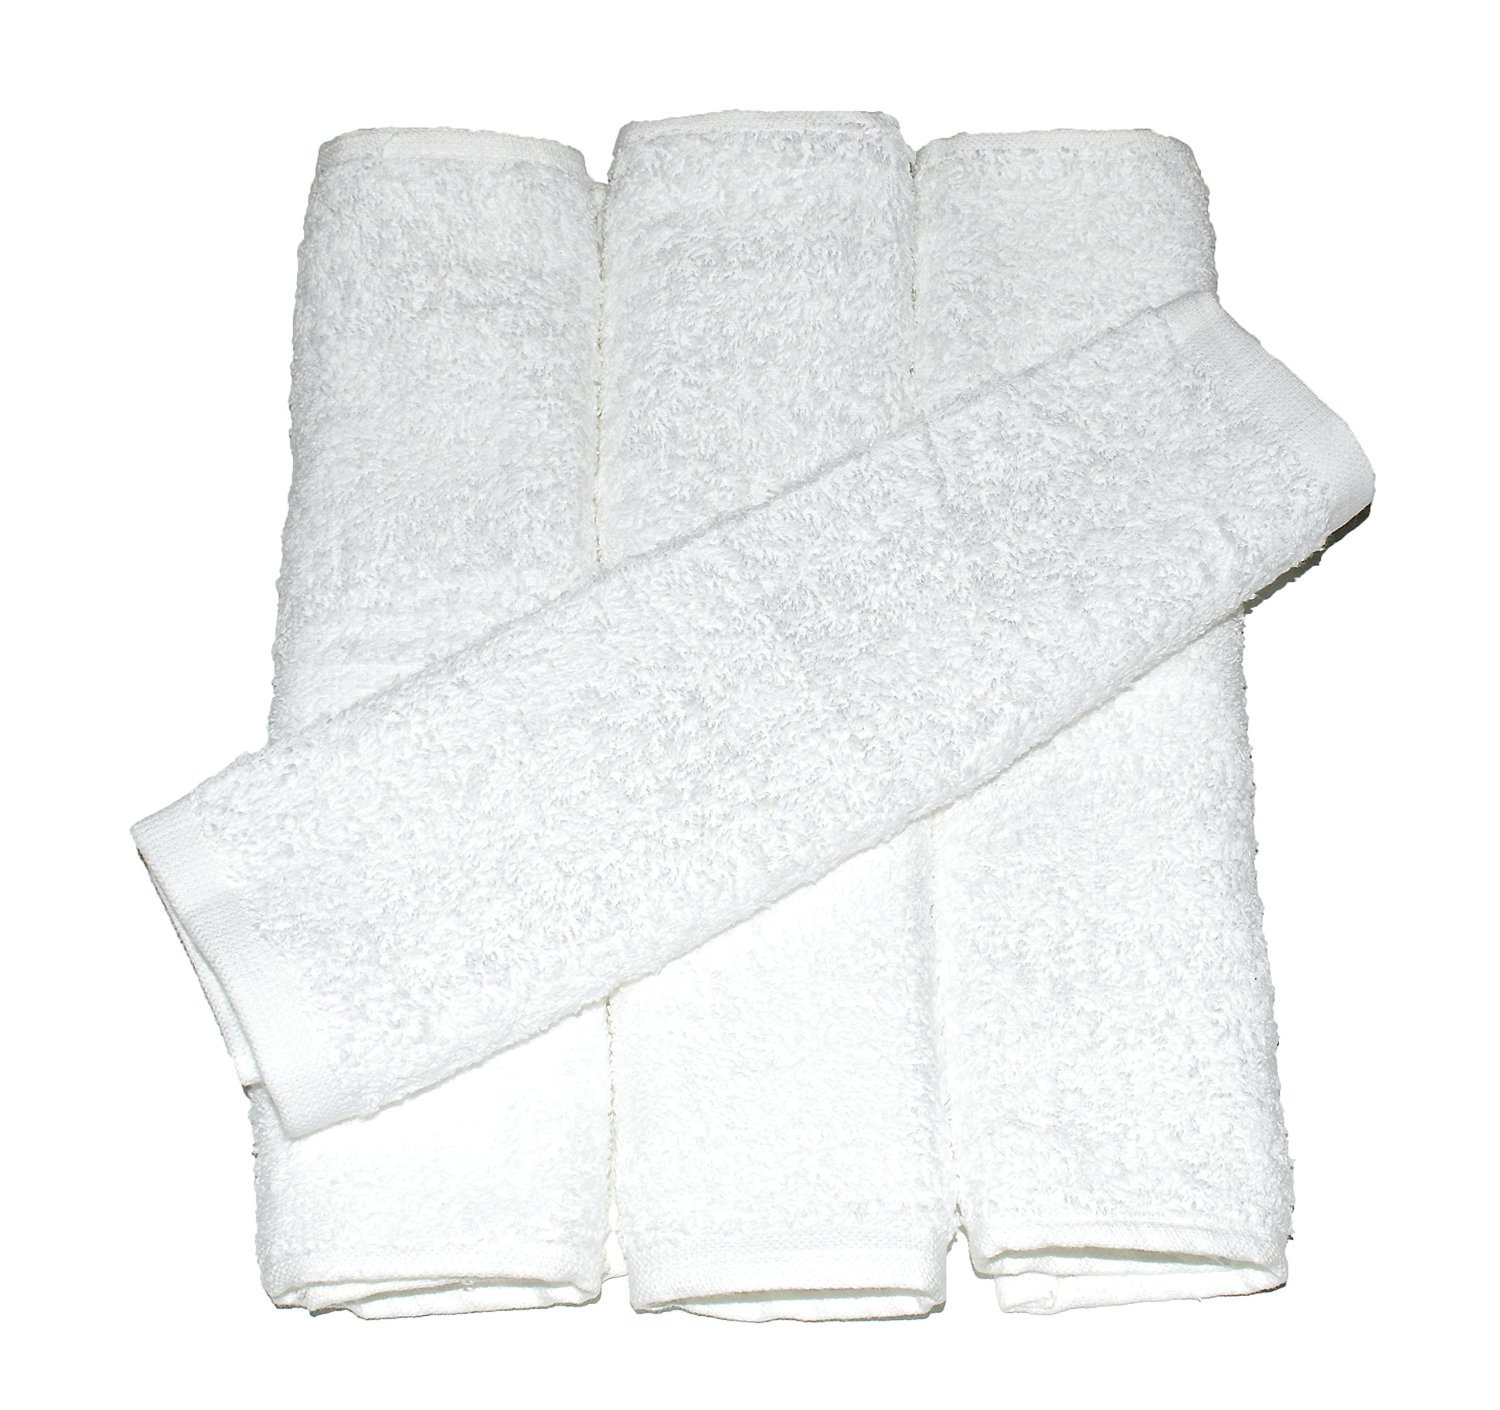 Long White Natural Cotton Towel on organic cotton towels, white tea towels, eco cotton towels, whitecotton dish towels, disposable cotton towels, white hand towels, peri cotton towels, high quality cotton towels, 100% cotton towels, white face towels, white linen towels, black towels, silver towels, white monogrammed towels, white towel sets, white hotel towel, white terry towel, white beach towels, egyptian cotton towels, white bath towels,